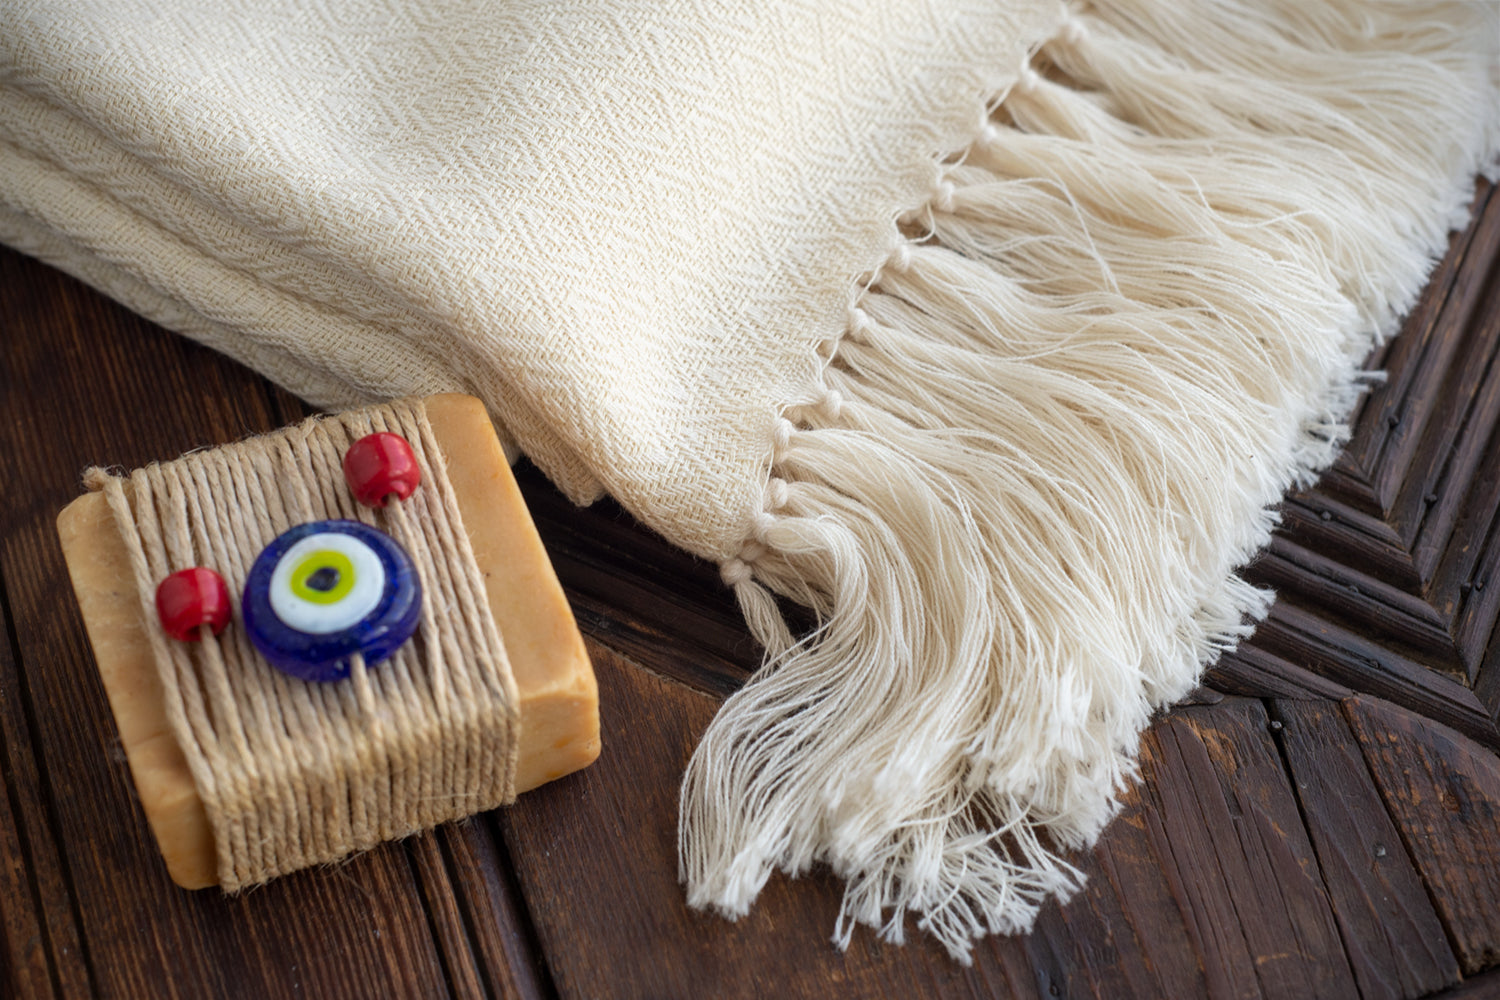 Diamond Weave Peshtemal Towel 100% Natural Cotton